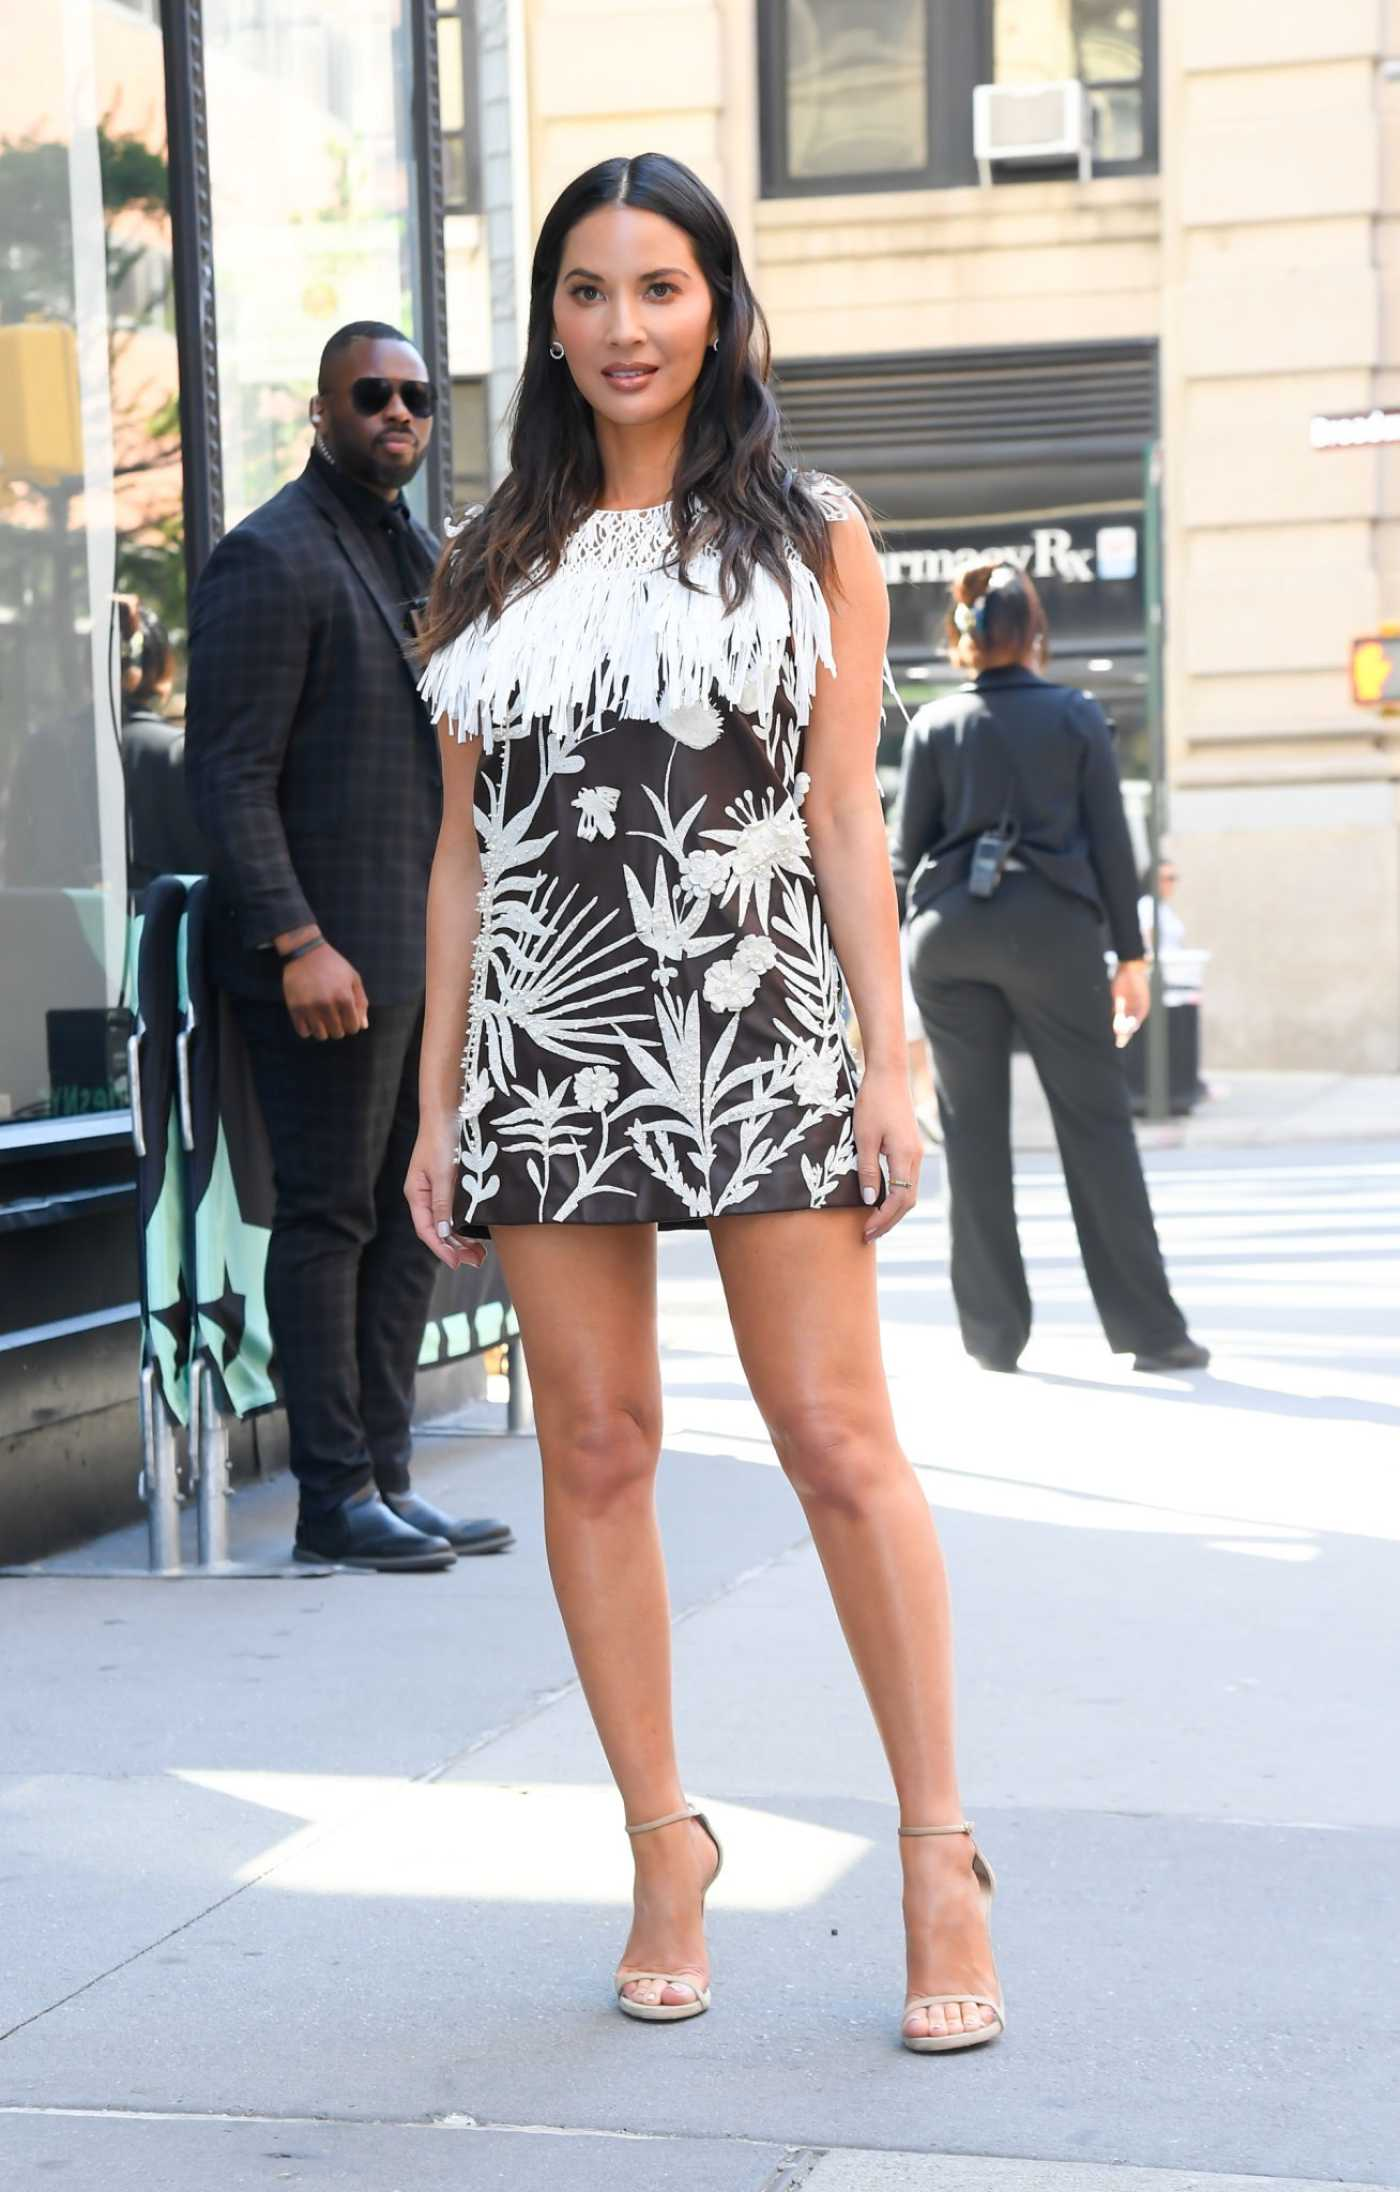 Olivia Munn in a Short Summer Dress Was Seen Out in NYC 06/26/2019